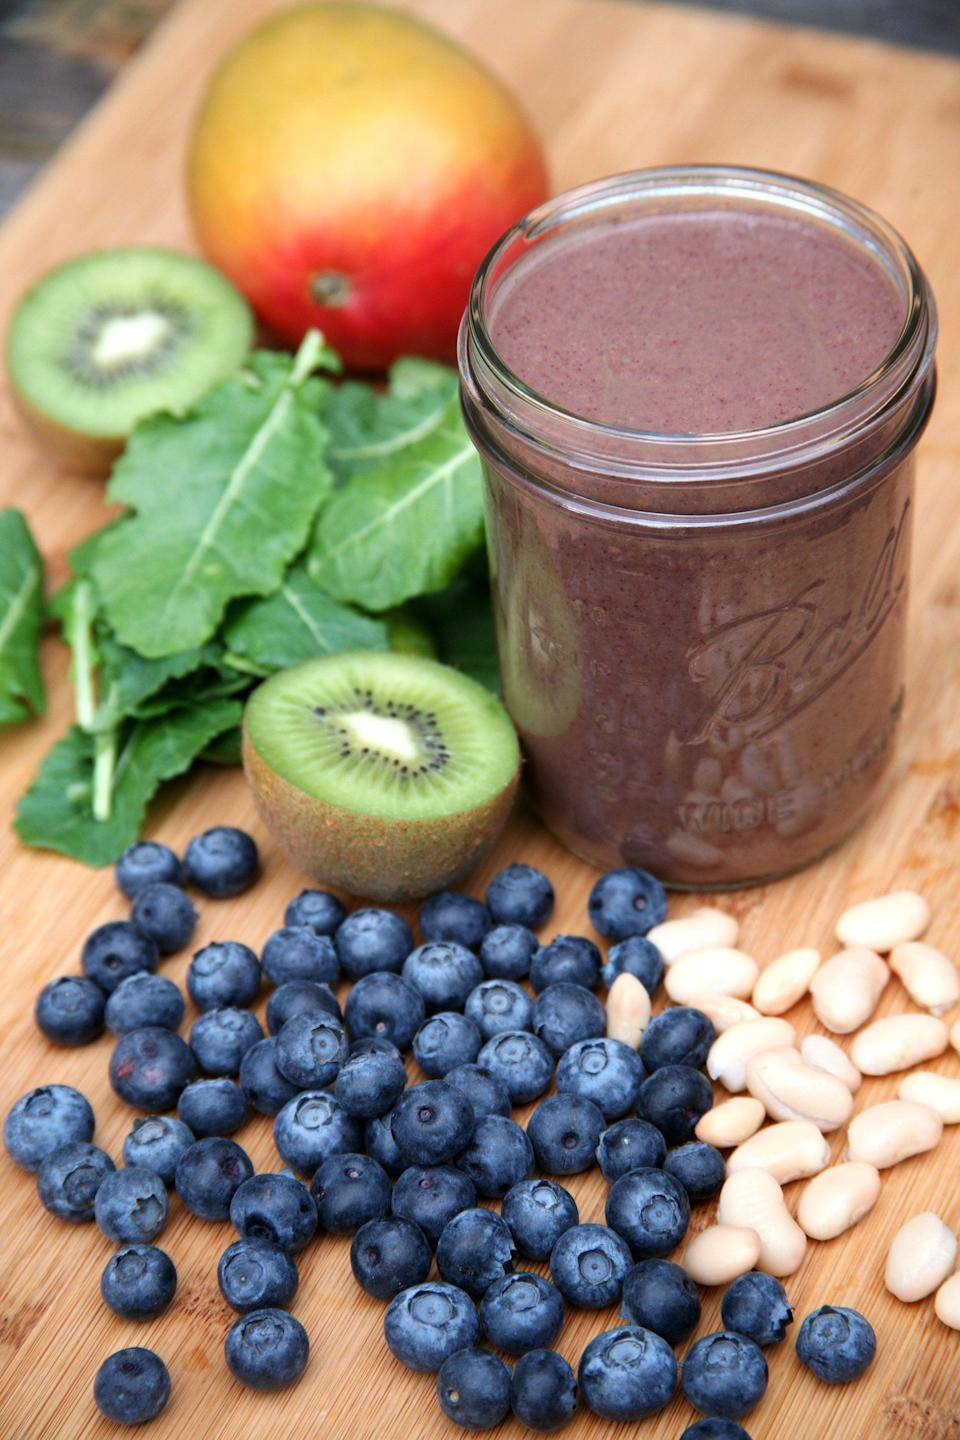 """<p><a href=""""https://www.popsugar.com/fitness/Why-You-Should-Add-Beans-Smoothies-42689481"""" class=""""link rapid-noclick-resp"""" rel=""""nofollow noopener"""" target=""""_blank"""" data-ylk=""""slk:Adding beans to your smoothie"""">Adding beans to your smoothie</a> seems like a weird idea, but just like tofu, they add a creamy consistency without any flavor. But Leslie said what's really important are the added fiber and protein they offer to keep you full and satisfied all morning long. </p> <p>Give this <a href=""""https://www.popsugar.com/fitness/Smoothie-Recipe-Healthier-Hair-30557044"""" class=""""link rapid-noclick-resp"""" rel=""""nofollow noopener"""" target=""""_blank"""" data-ylk=""""slk:blueberry mango kiwi kale smoothie"""">blueberry mango kiwi kale smoothie</a> a try, and you'll wonder why you didn't start adding beans to your blender sooner.</p>"""